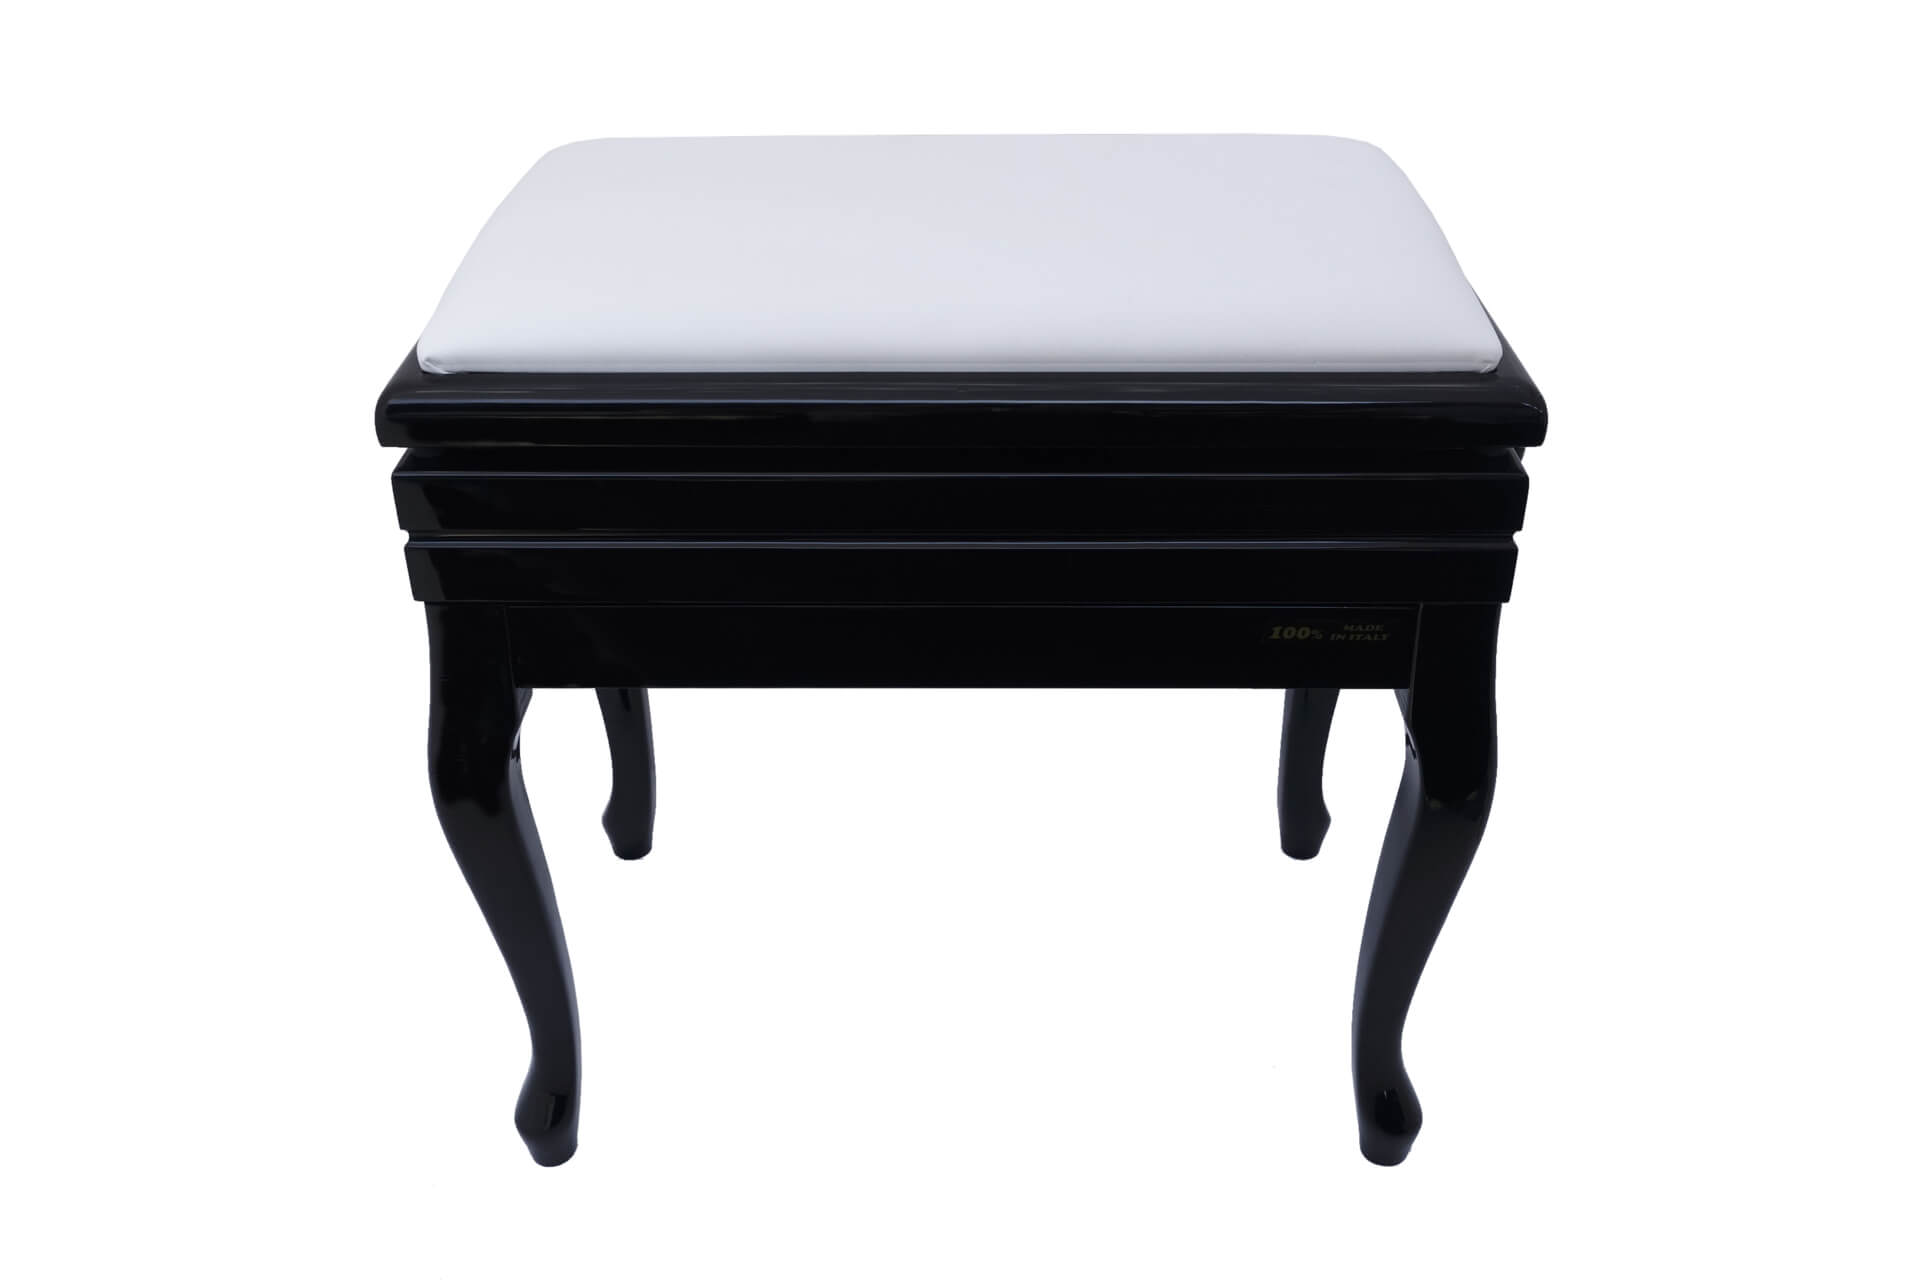 tabouret de piano avec le coussin interchangeable r glable en hauteur et les jambes d montables. Black Bedroom Furniture Sets. Home Design Ideas